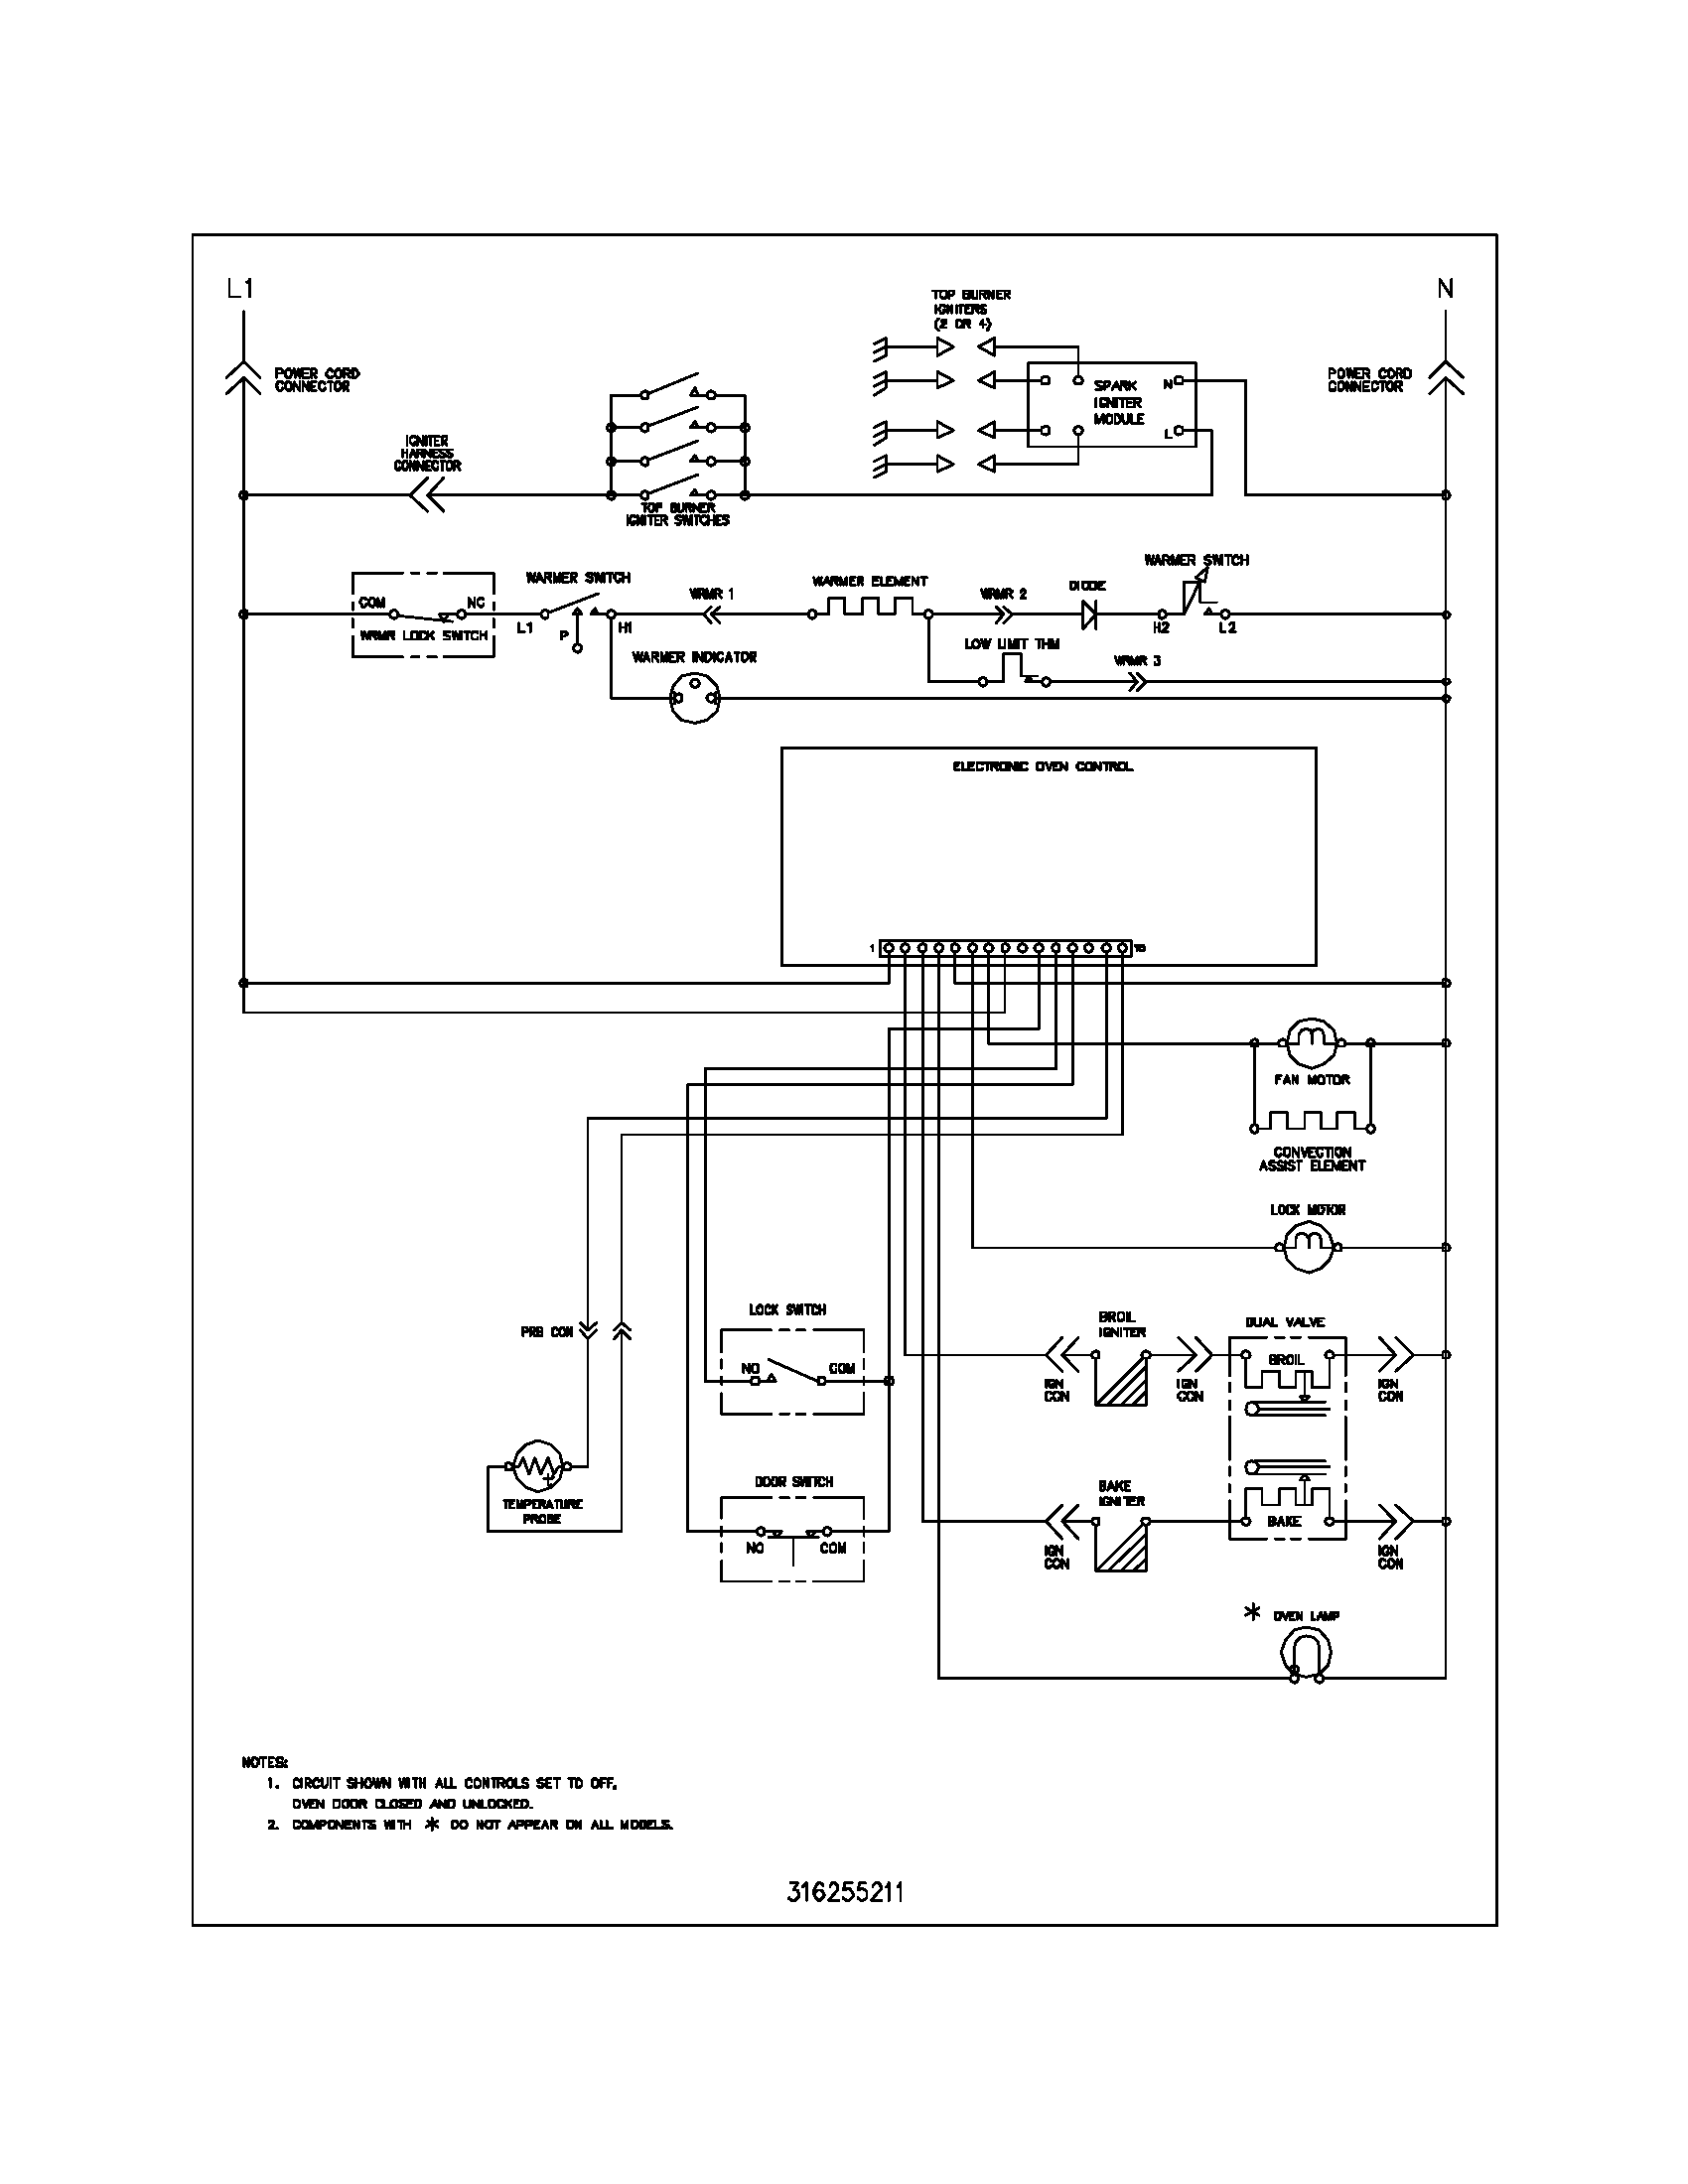 Old Range Wiring Diagram - Wiring Diagram Fascinating on ceiling fans wiring diagram, ge air conditioner parts, ge air conditioner control panel, ge air conditioner motor, basic air conditioning wiring diagram, ge air conditioner remote control, ge appliances wiring schematic, ge packaged terminal air conditioner, ge air conditioner installation, ge air conditioner accessories, mitsubishi air conditioners wiring diagram, ge air conditioner capacitor, window air conditioner diagram,